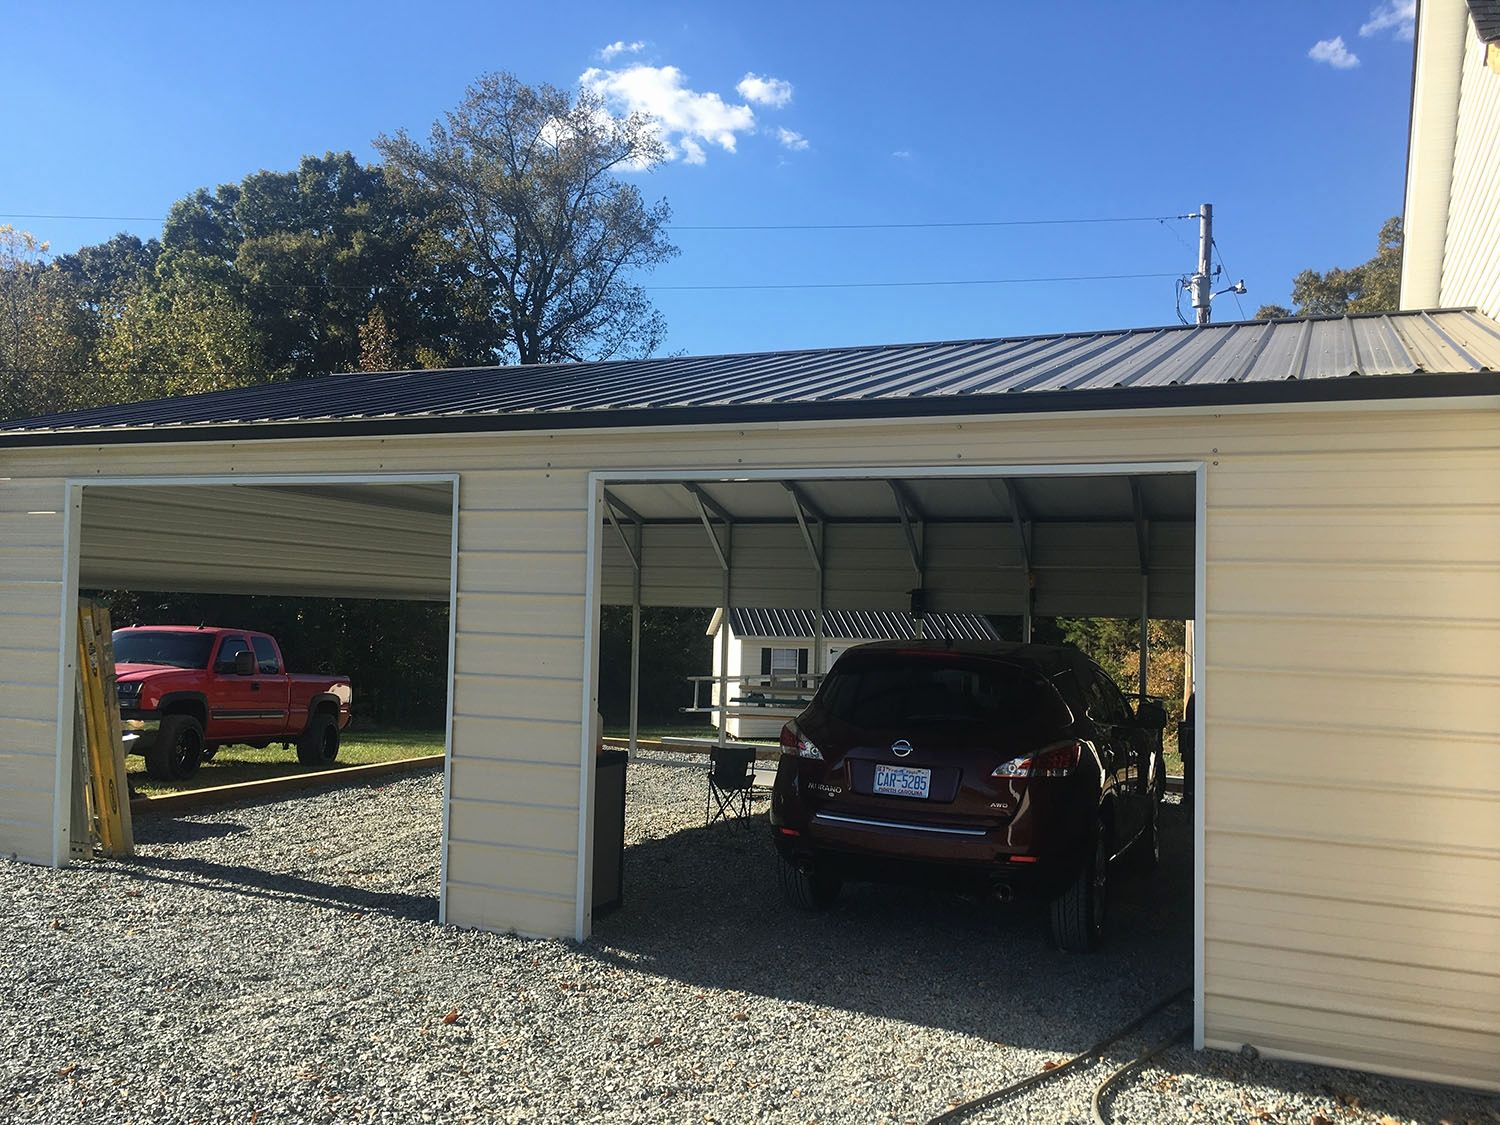 Cheap Carports Carport Garage Portable Carport Diy Carport Palram Carport Wood Carport House Carport Cheap Carports With Images Diy Carport Carport Carport Canopy